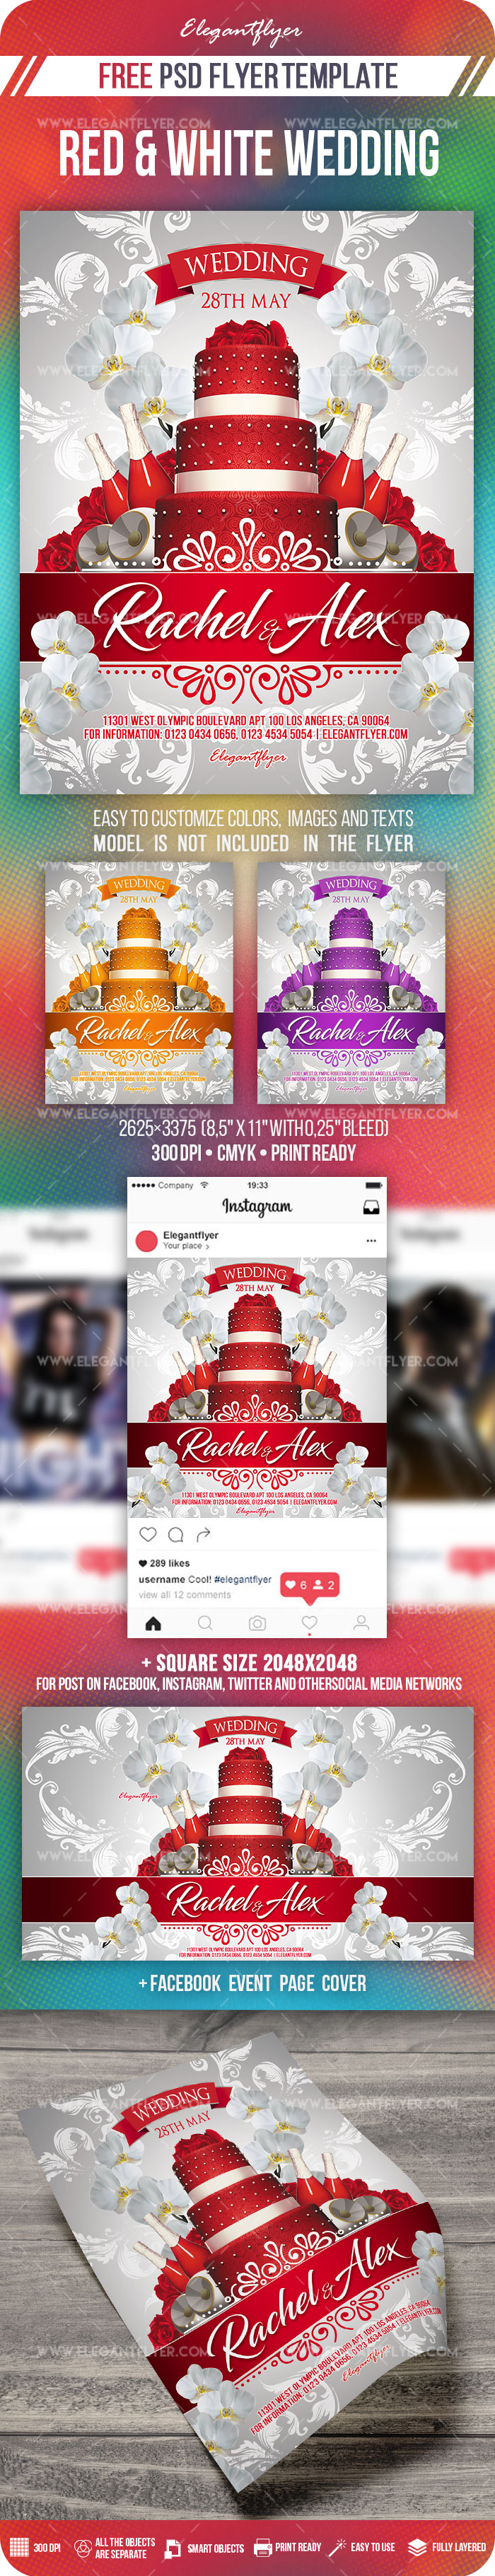 Red and White Wedding – Free PSD Flyer Template + Facebook Cover + Instagram Post